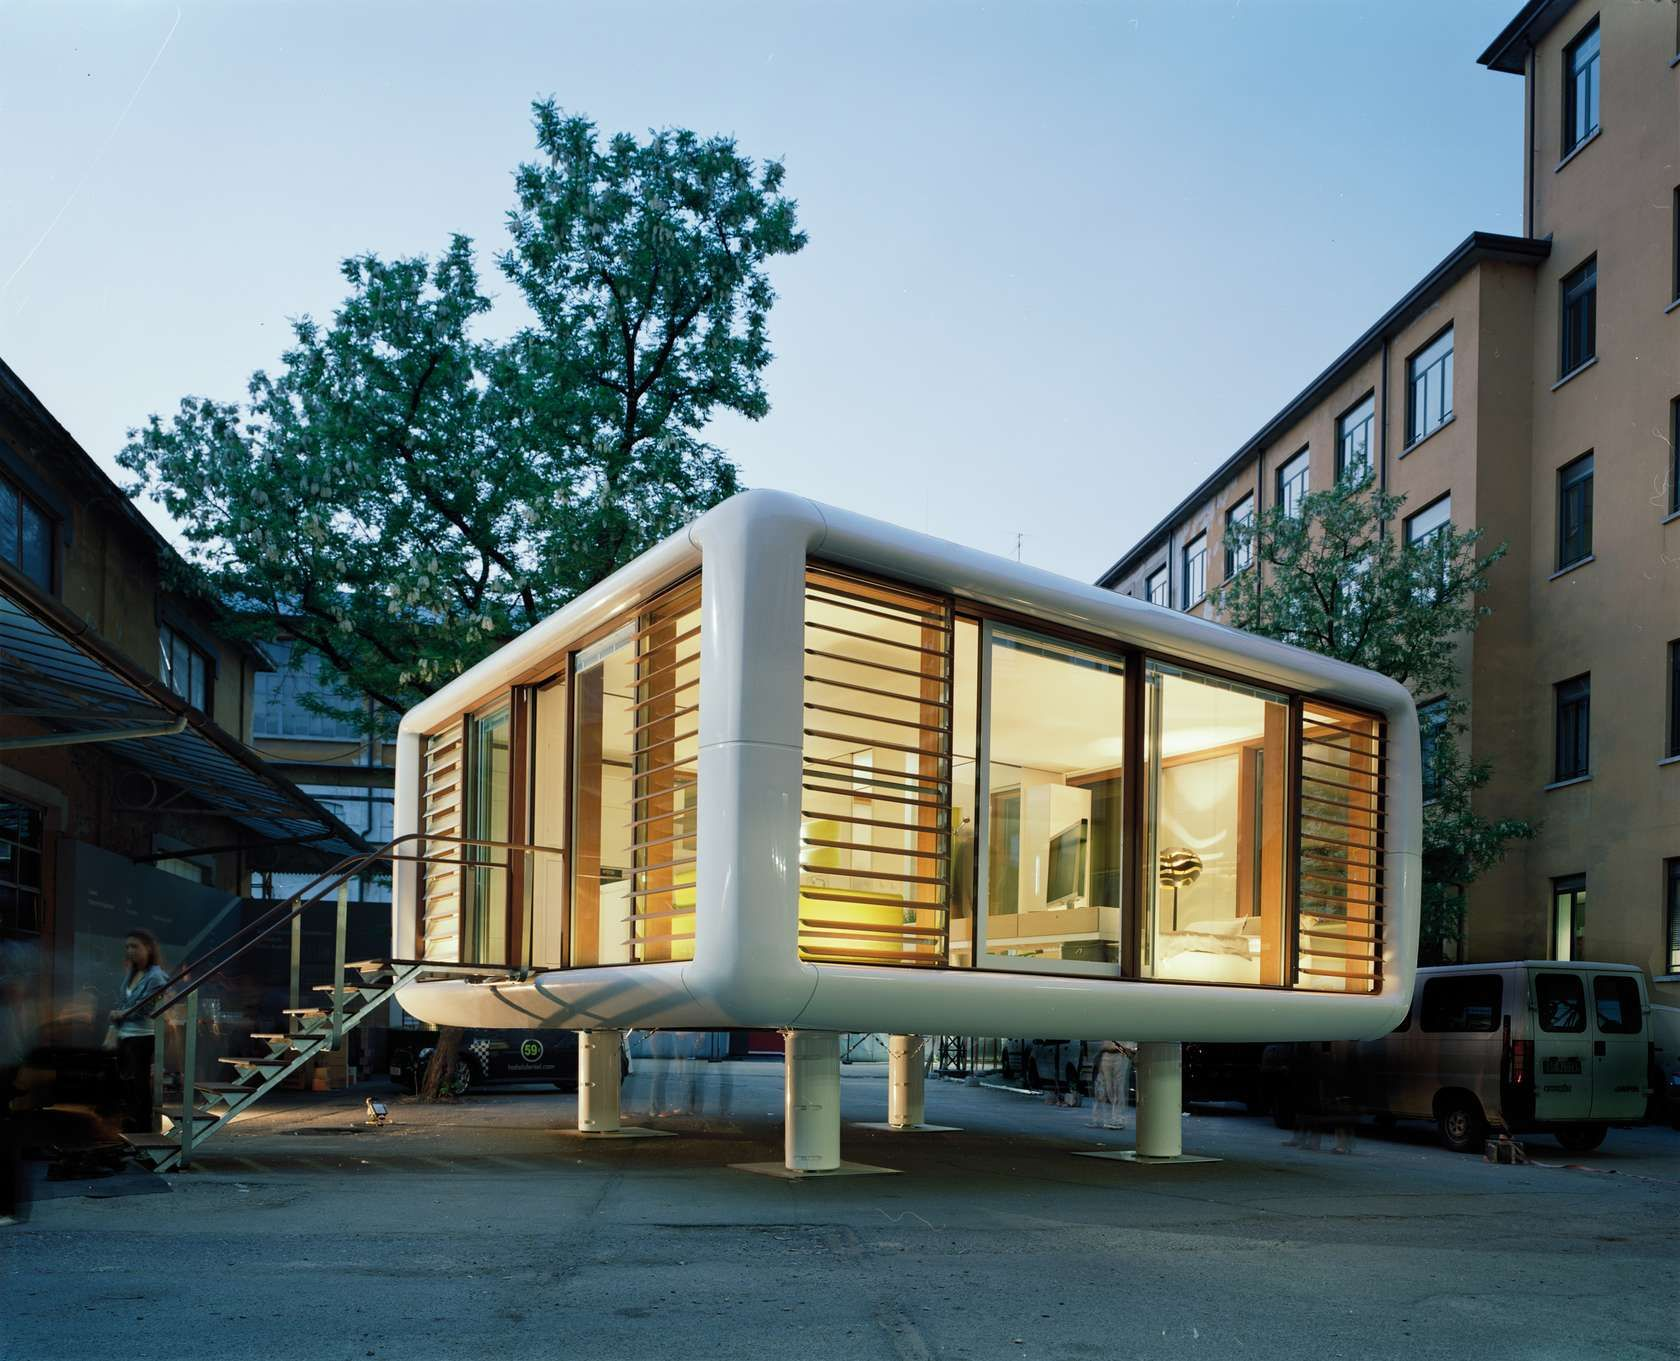 Take To The Roof In This Dapper, Futuristic Prefab